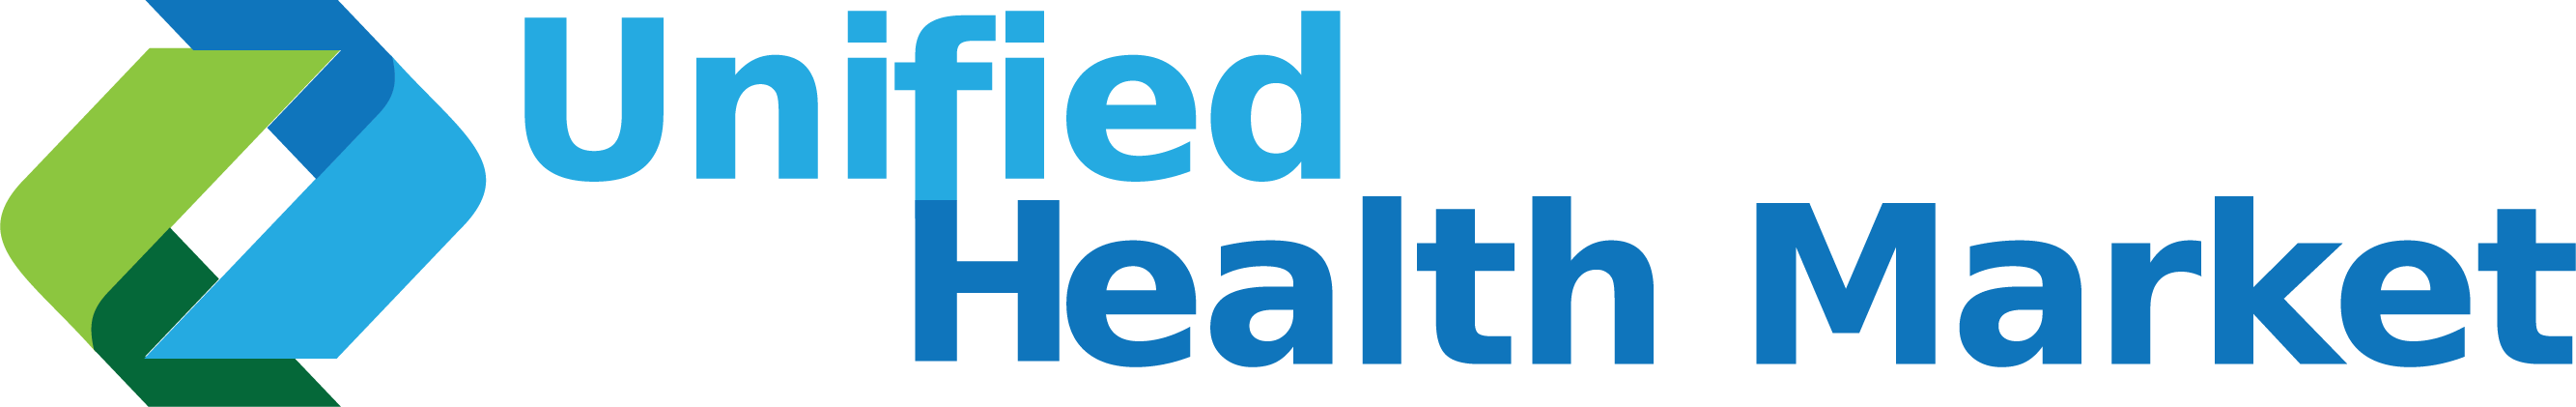 Unified Health Market